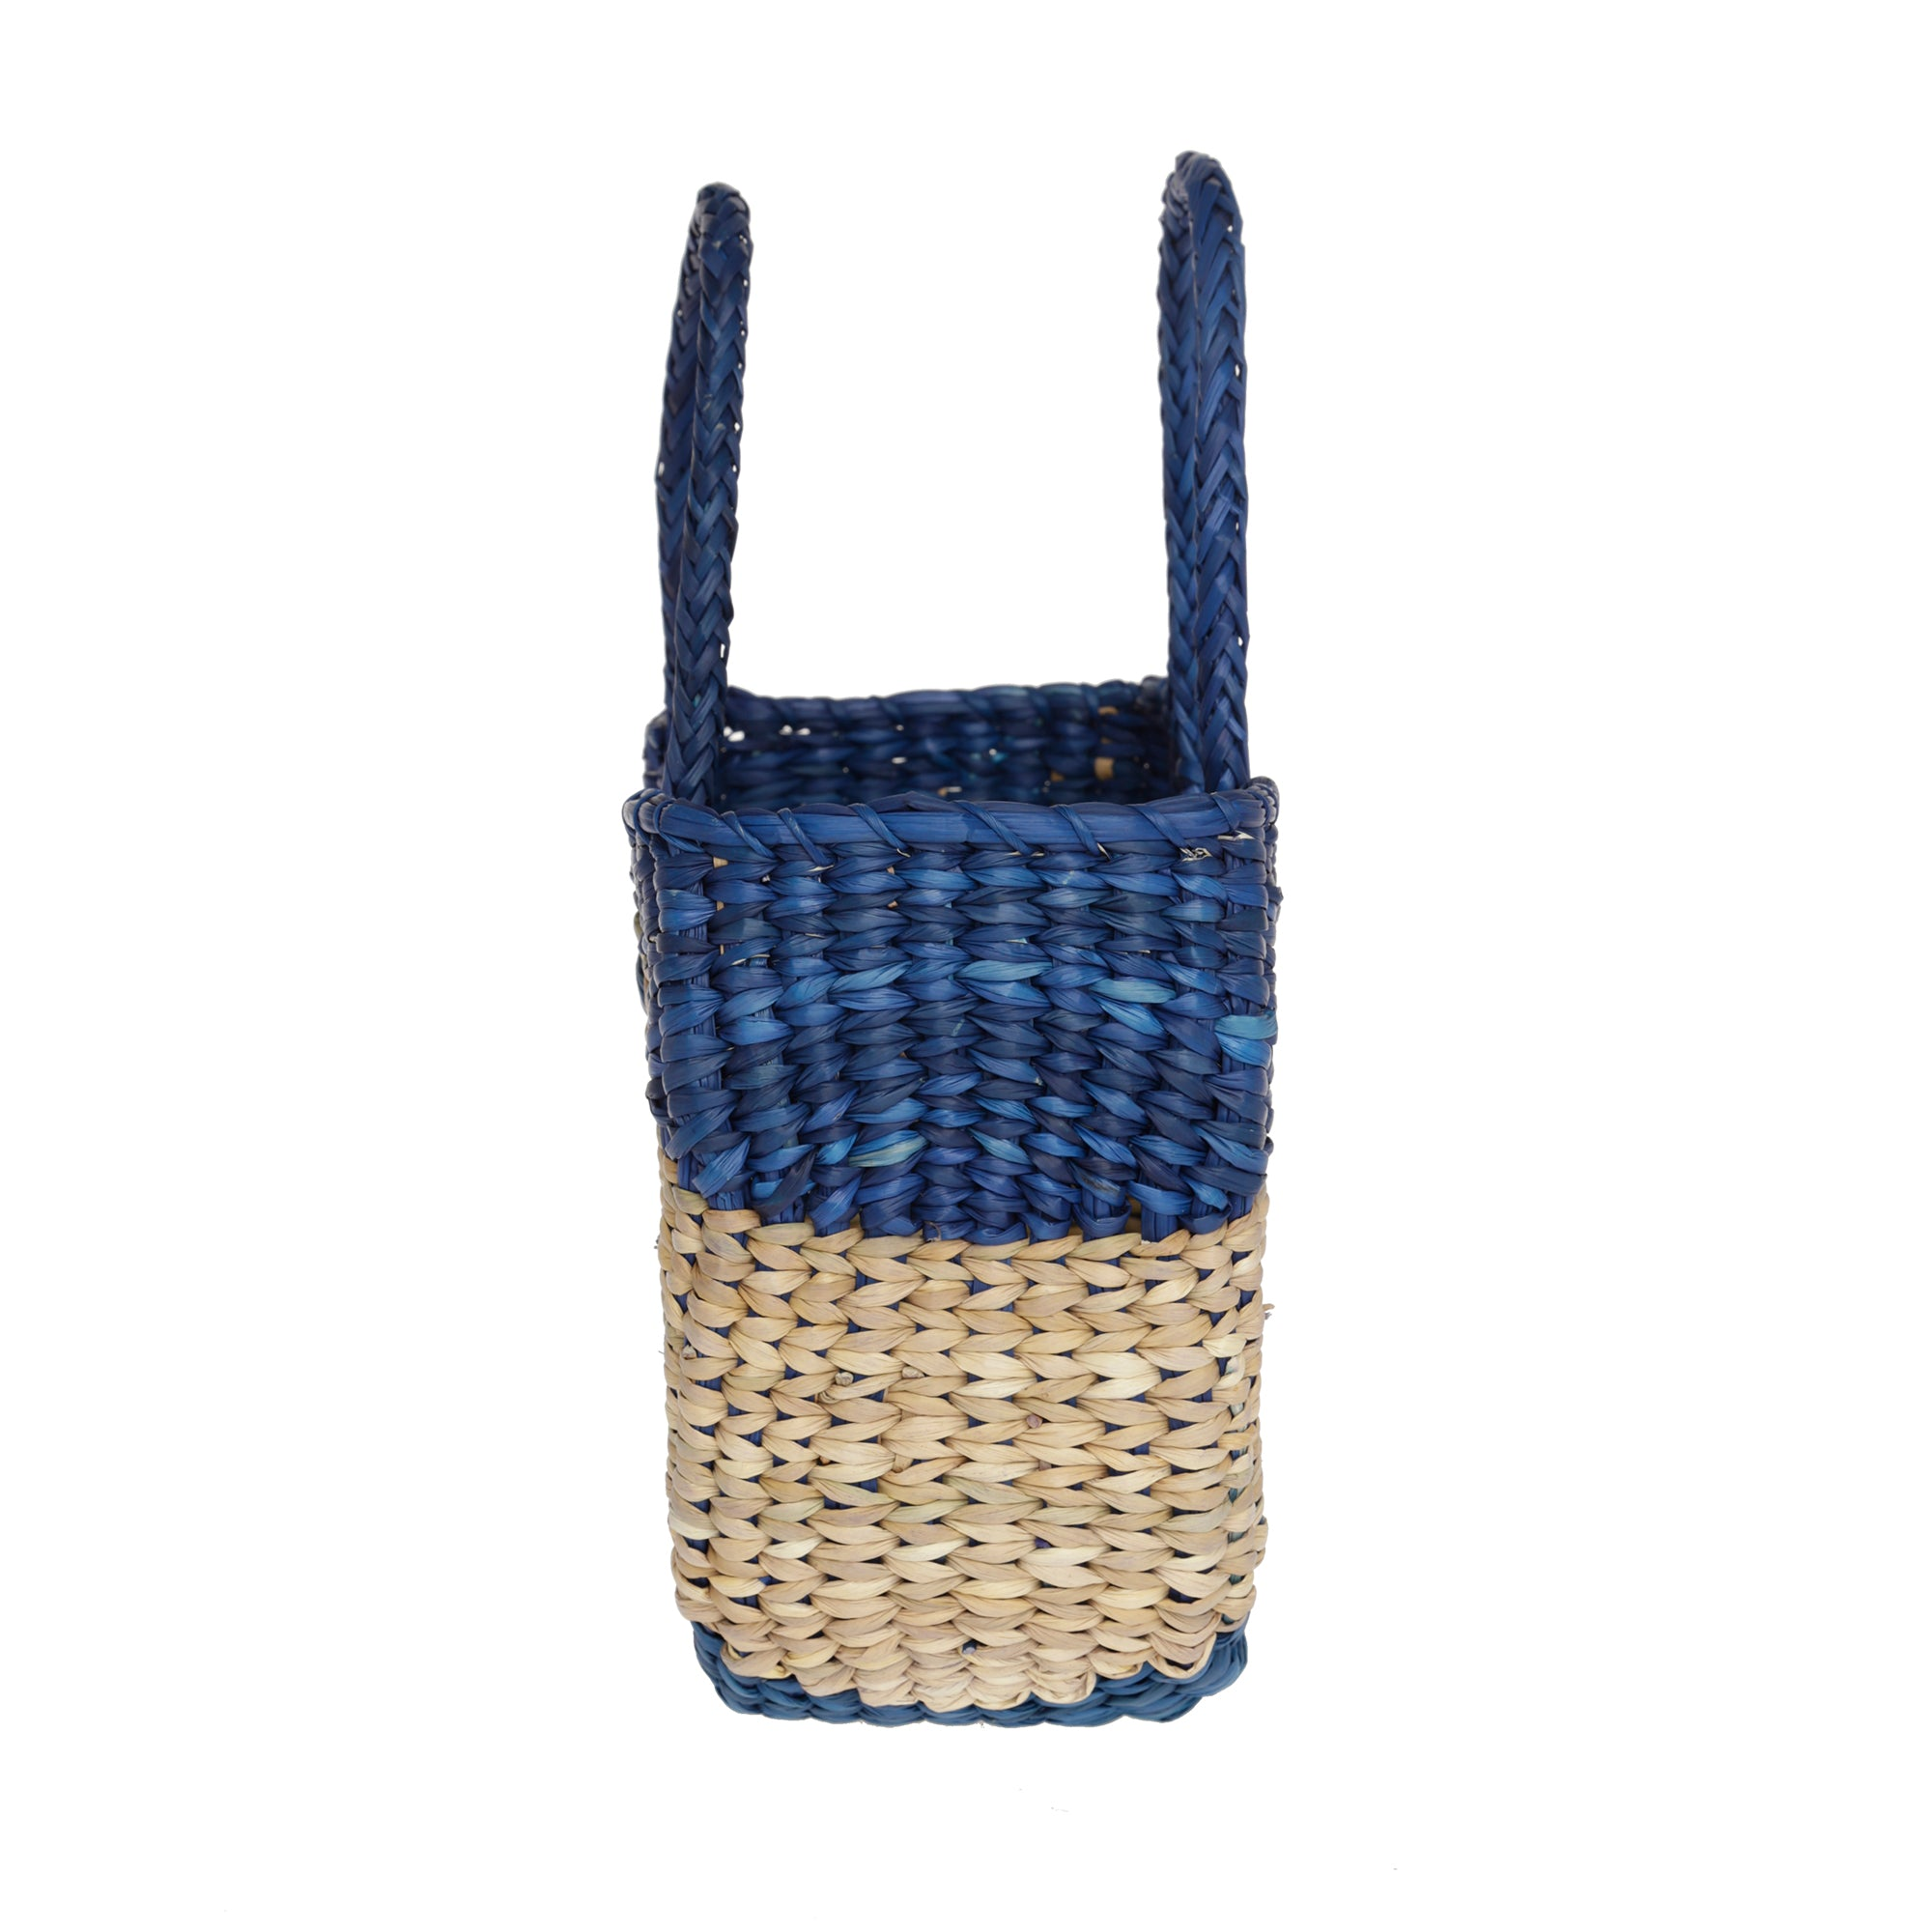 Basket Tasche Basketbag Korb Summer Sommer